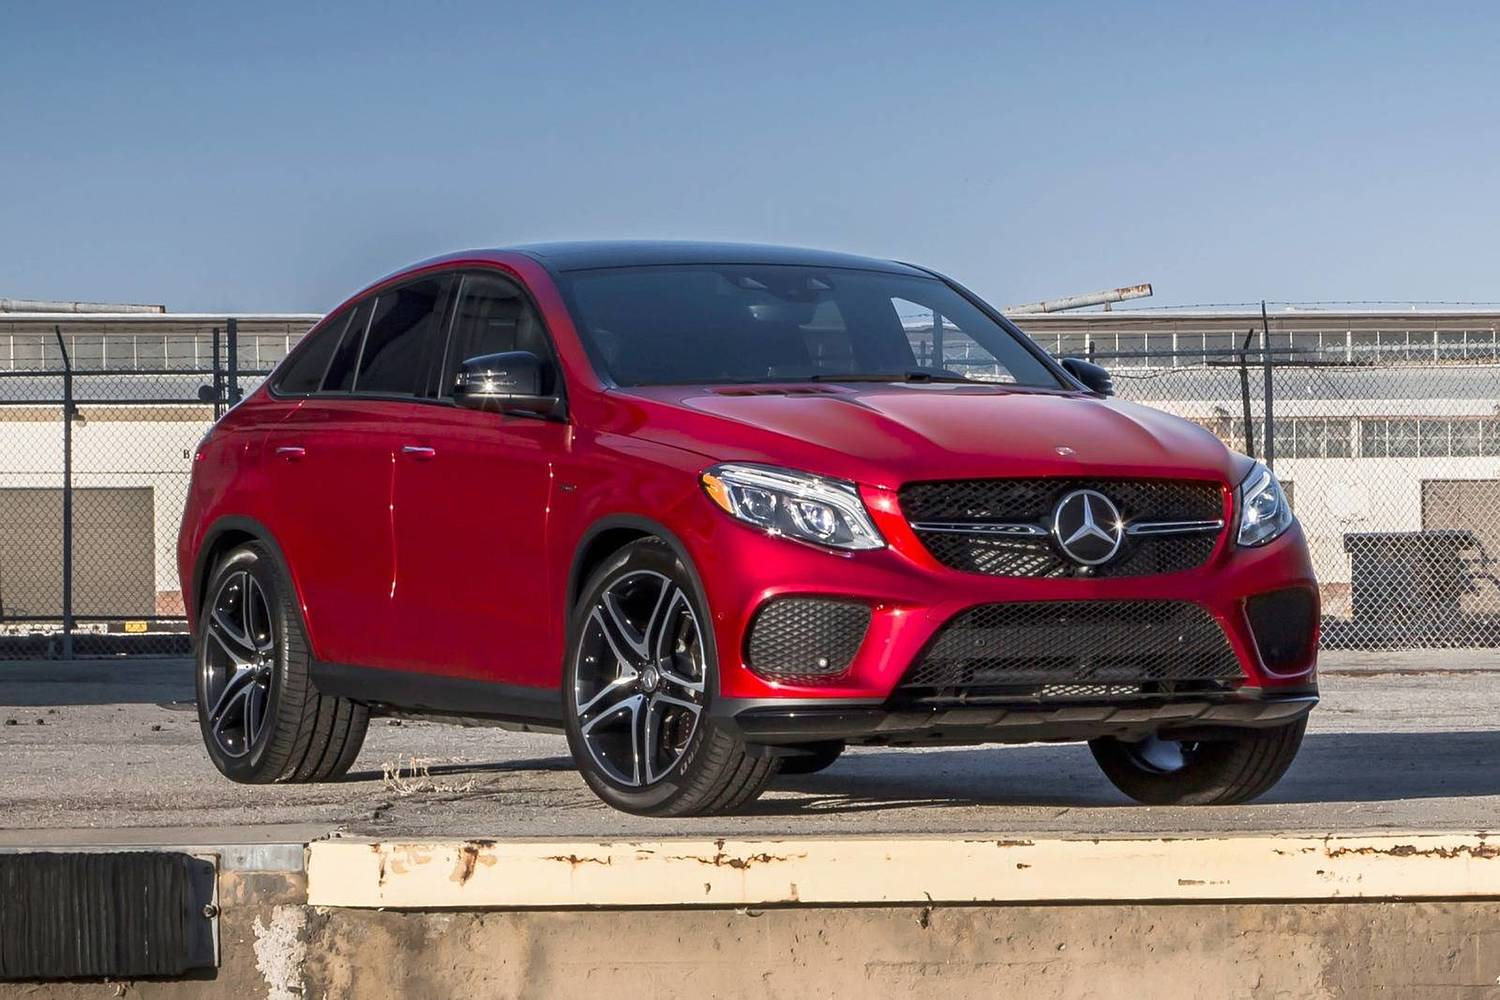 2018 mercedes benz gle class coupe suv vehie. Black Bedroom Furniture Sets. Home Design Ideas